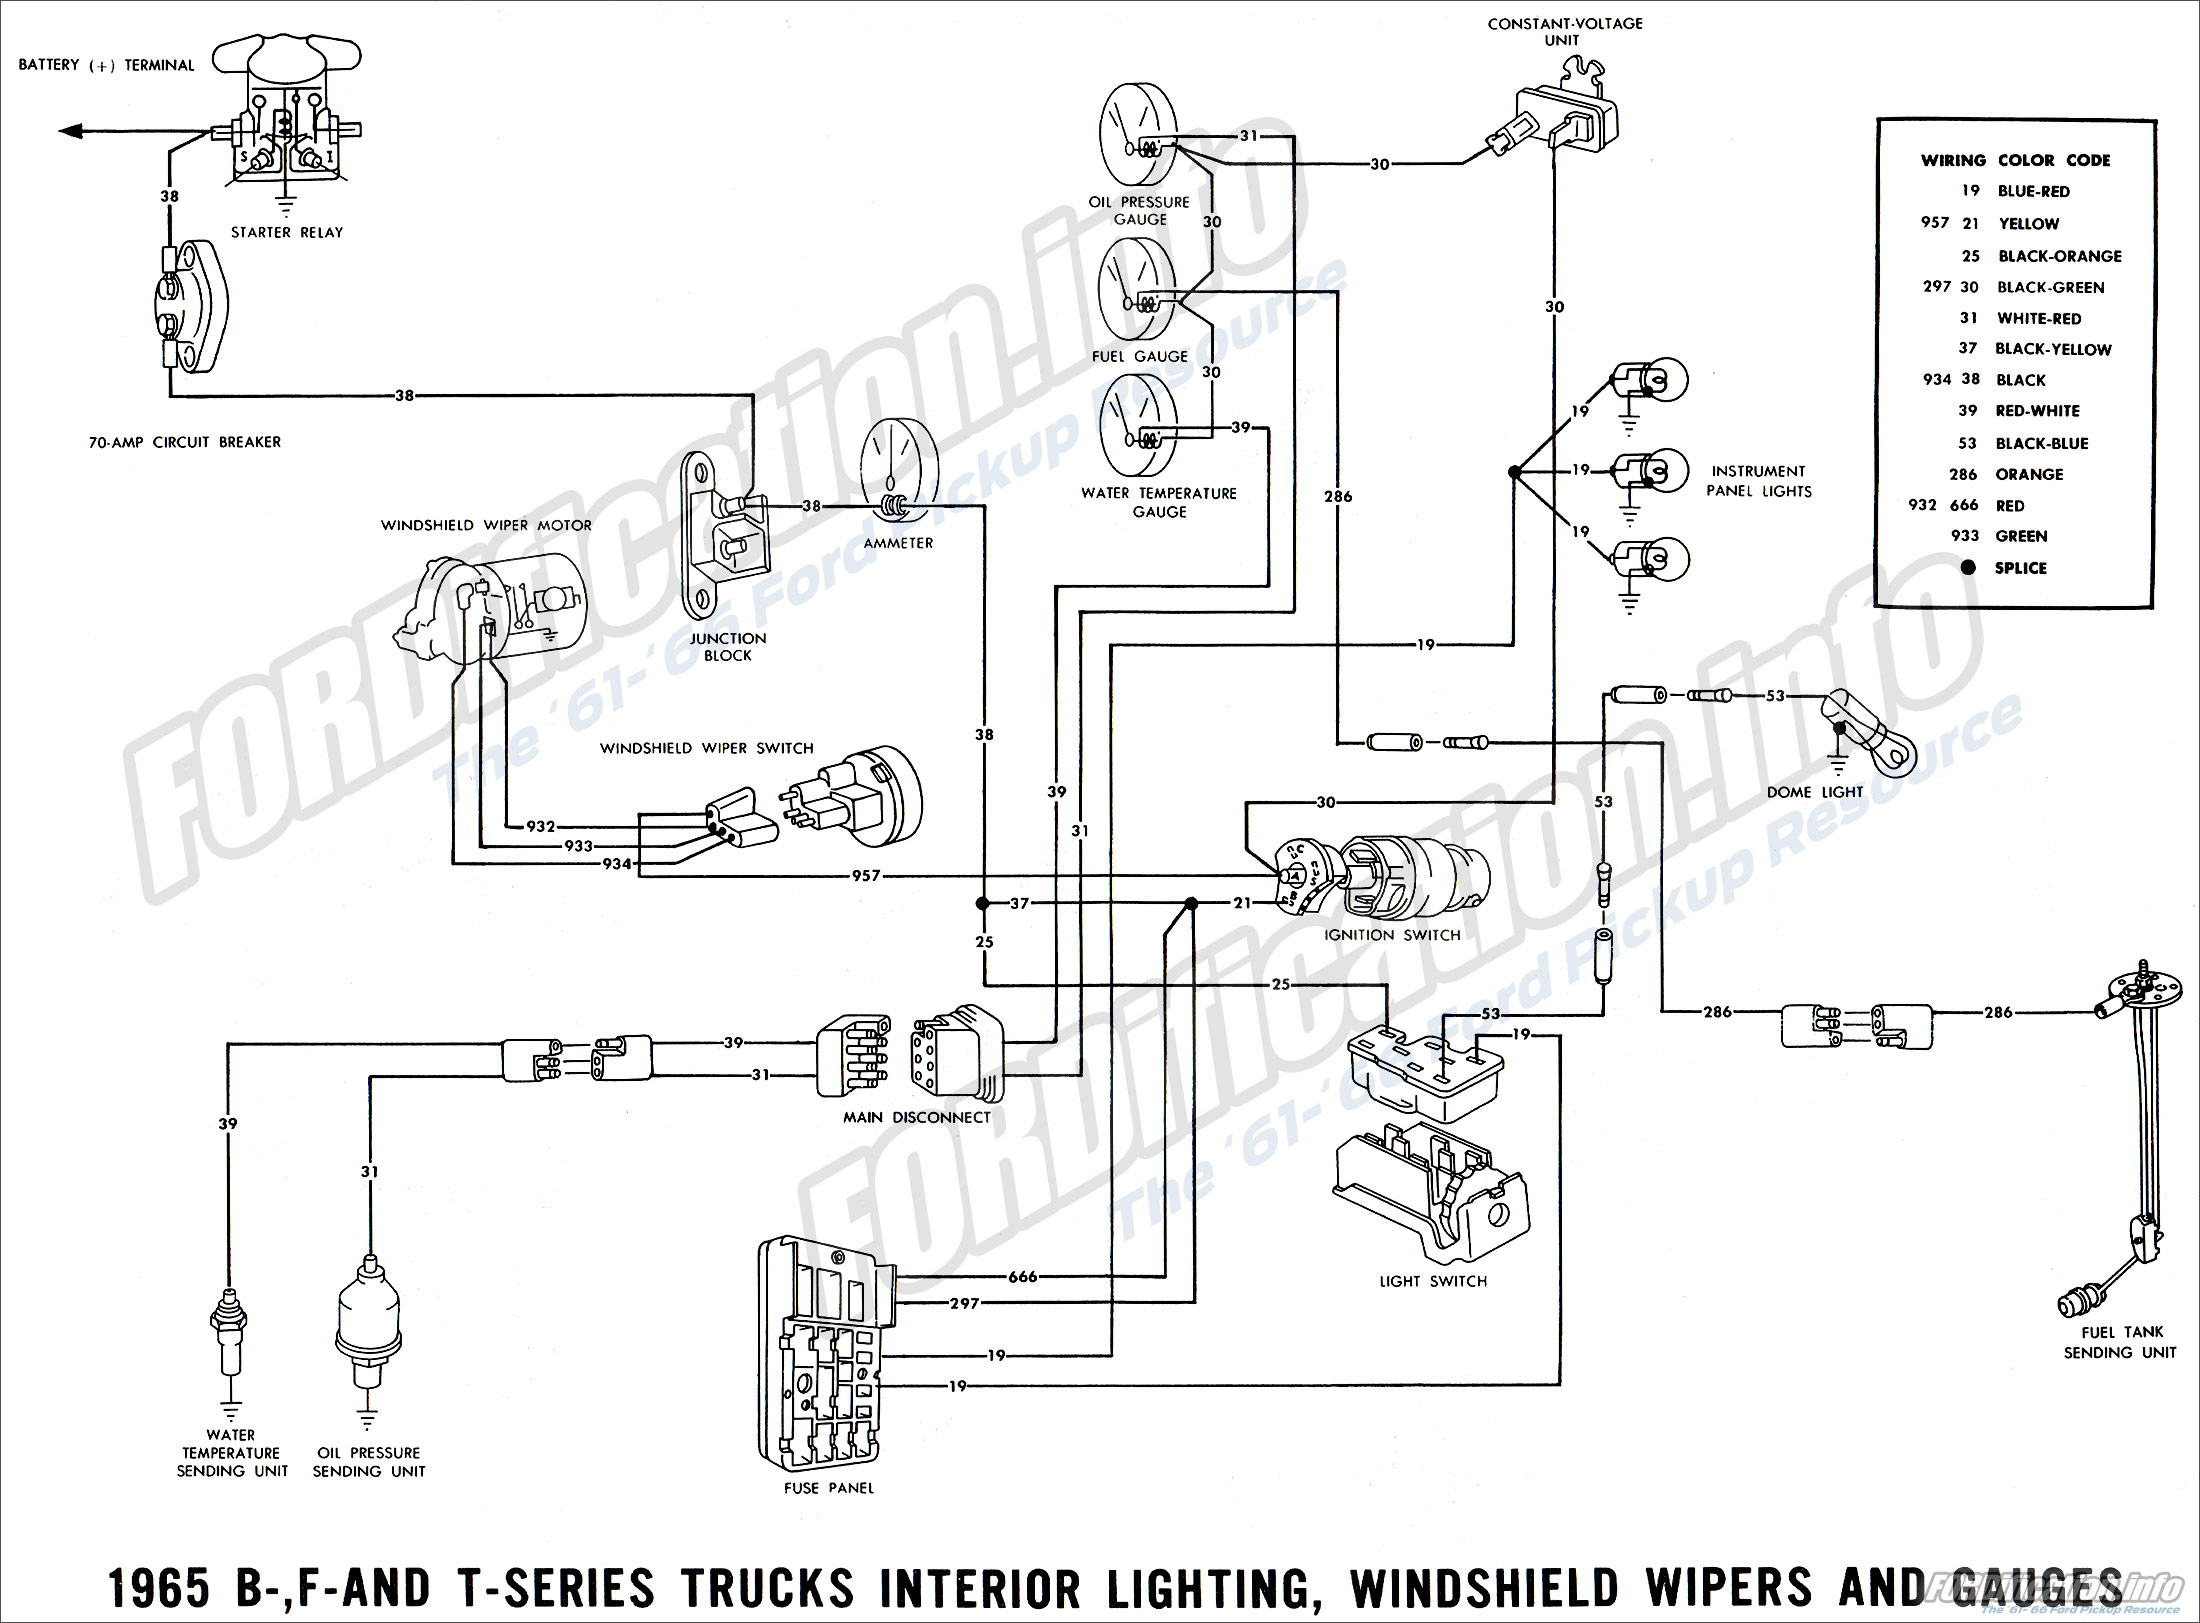 Ford F100 Wiring Archive Of Automotive Diagram 1974 F250 Harness 1965 Truck Diagrams Fordification Info The 61 66 Rh 1955